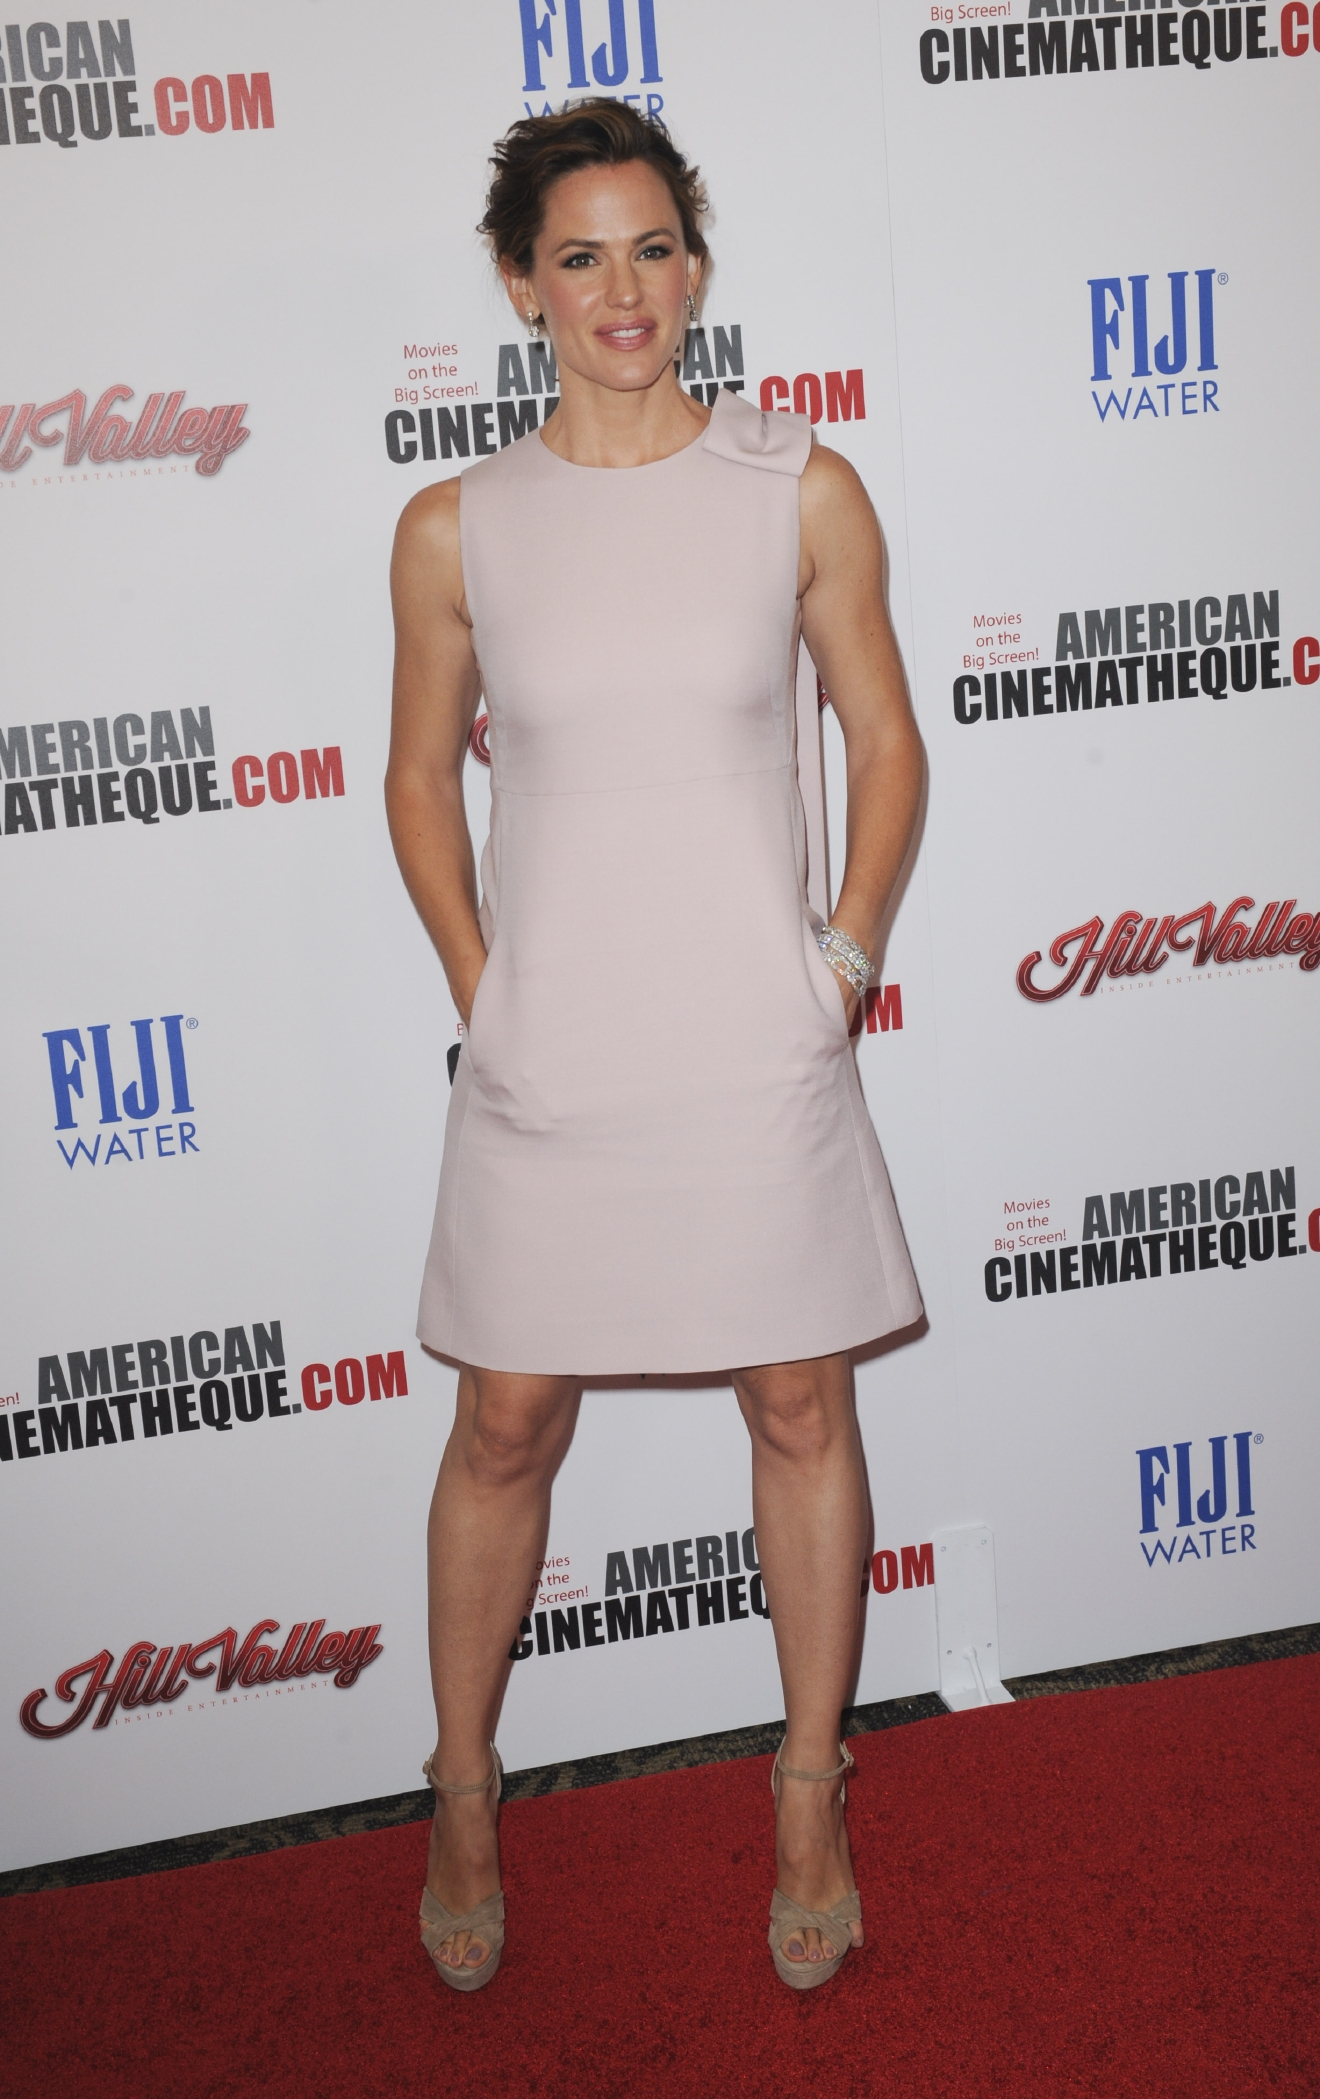 The 29th American Cinematheque Awards                                    Featuring: Jennifer Garner                  Where: Los Angeles, California, United States                  When: 31 Oct 2015                  Credit: Apega/WENN.com